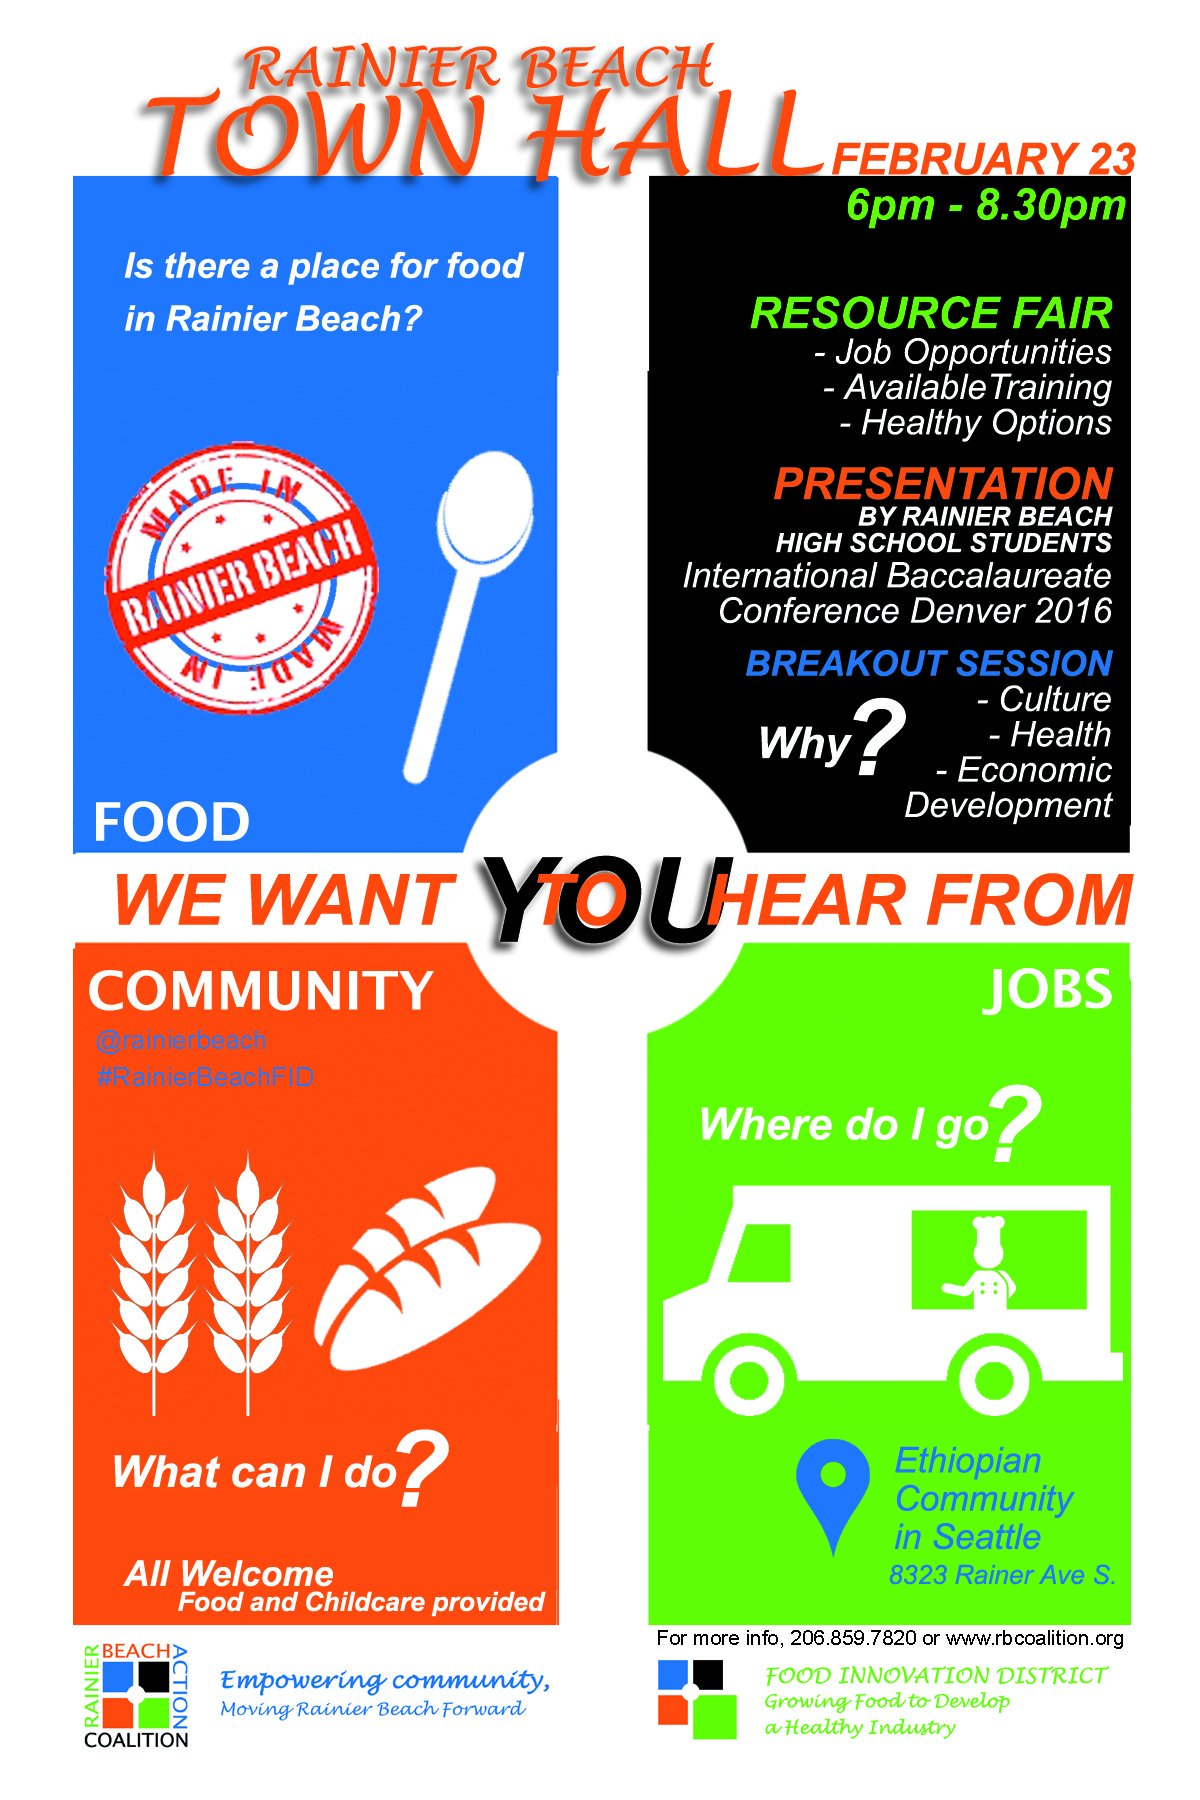 Is there a place for Food in Rainier Beach? We want to hear from YOU. @rainierbeach #RainierBeachFID https://t.co/8PGx6ojRli